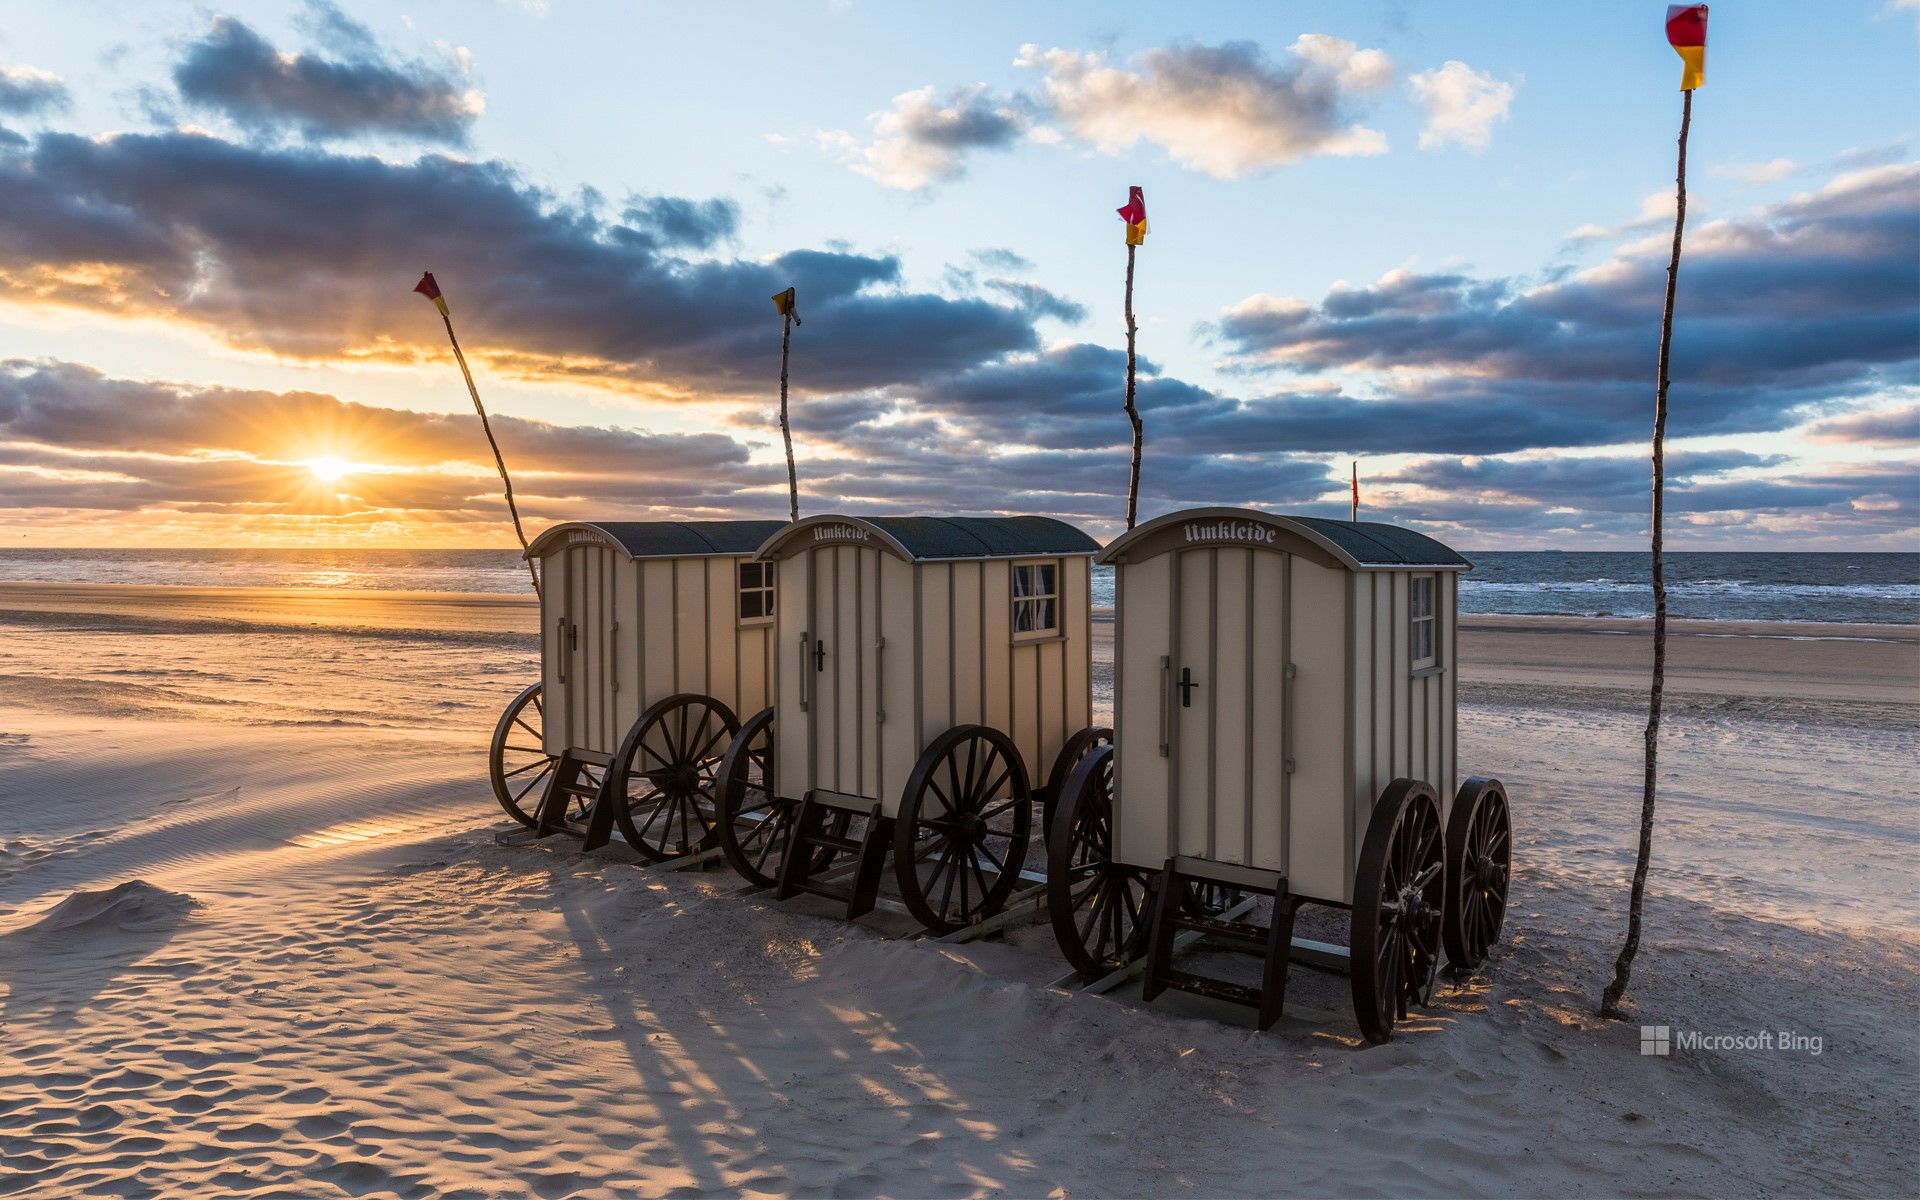 Changing cars on the beach at sunset on the island of Norderney, East Frisia, Lower Saxony